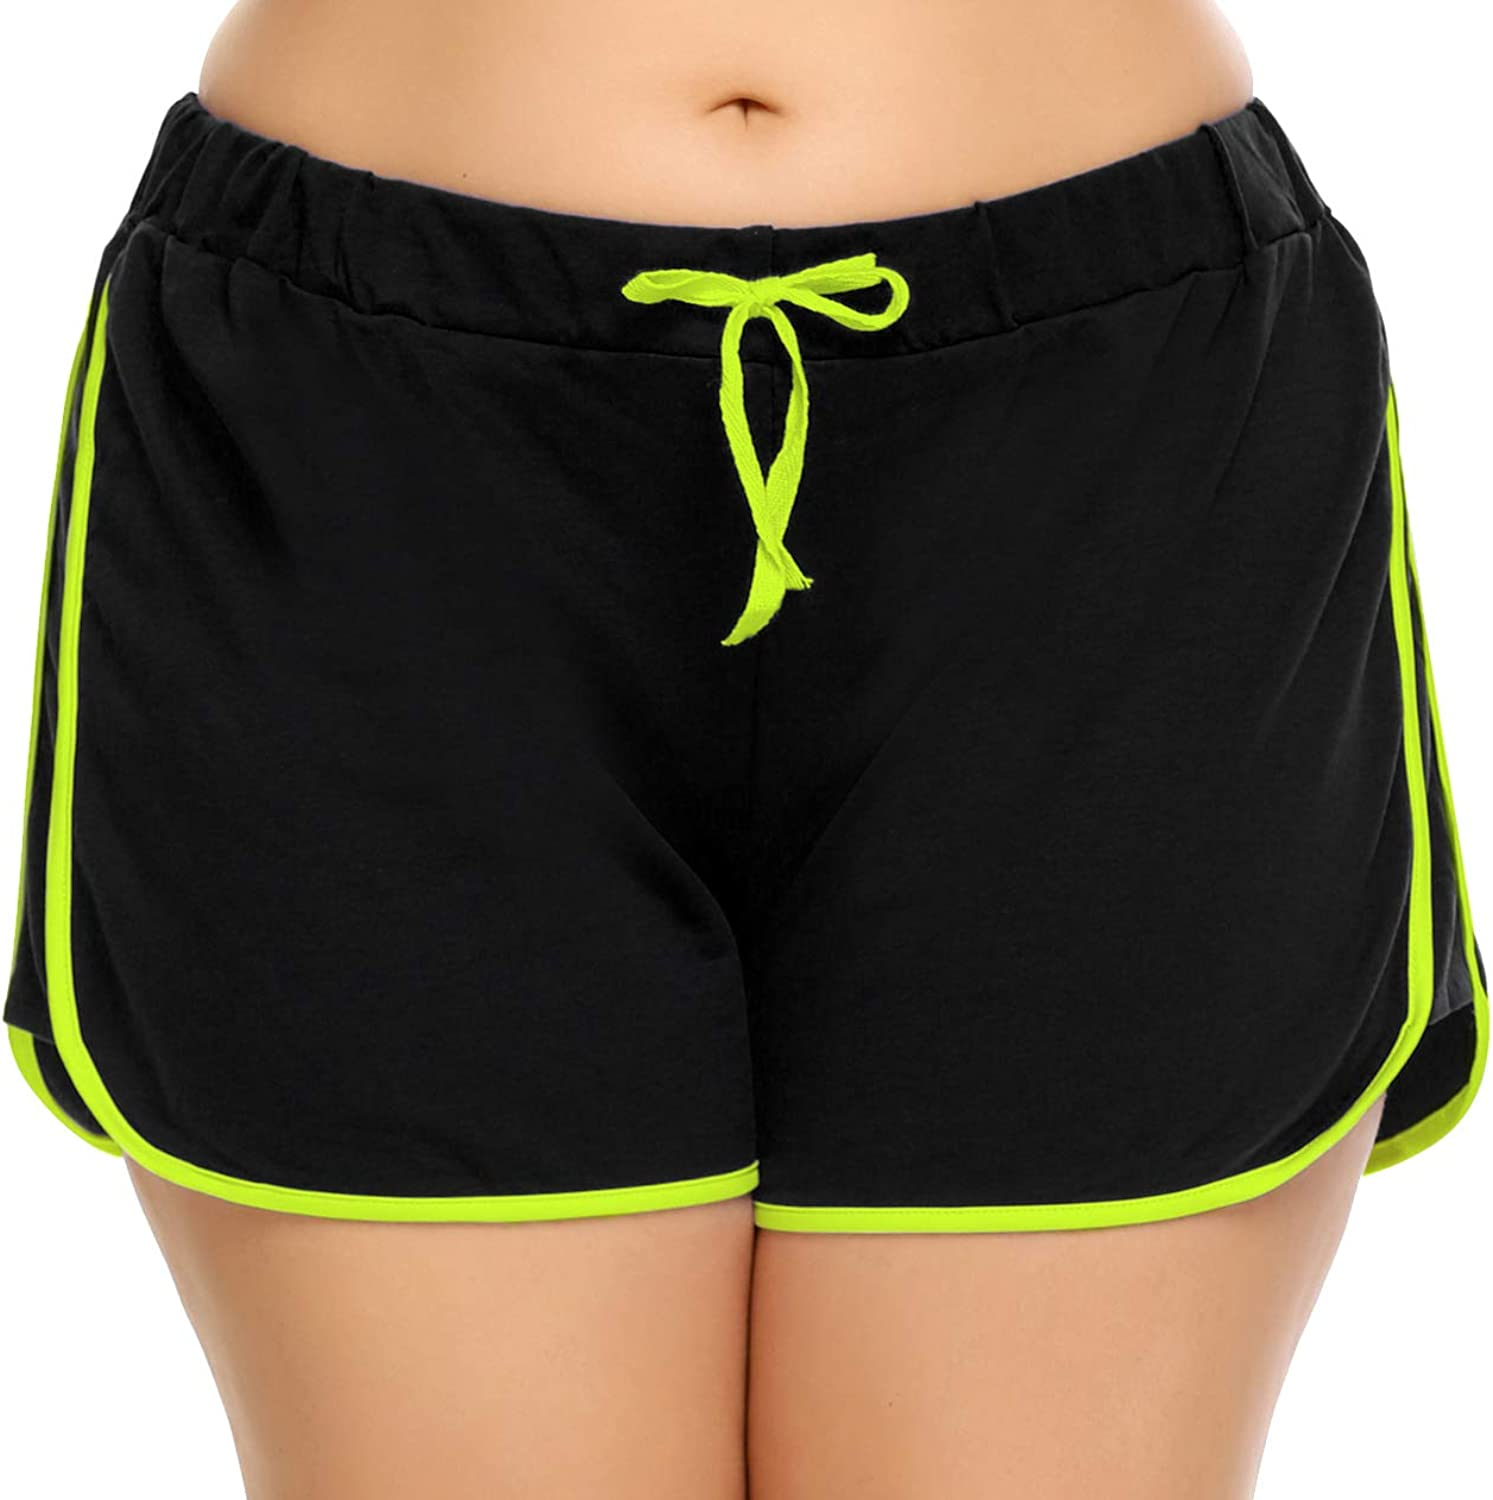 IN'VOLAND Women Dolphin Shorts Plus Size Running Short for Workout Gym Sports Active Yoga